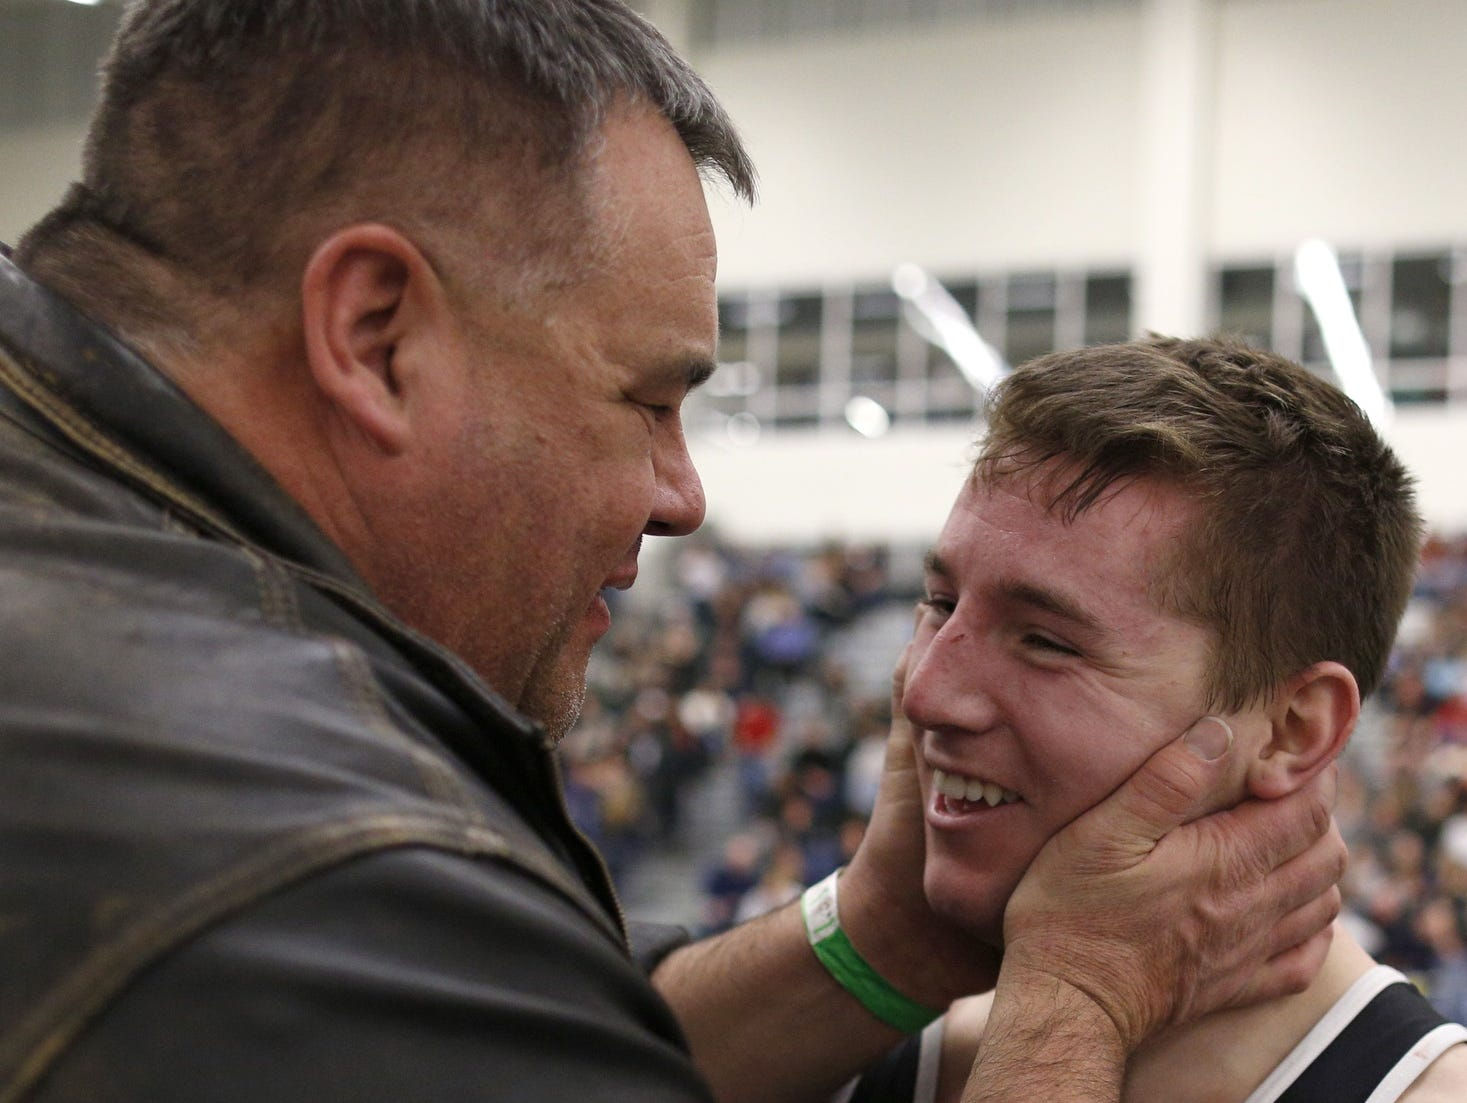 """Brad Paddock, shown here congratulating former Warsaw wrestler Ryan Coveny during the 2014 SuperSectionals, is remembered as an """"incredible mentor,'' a motivator and someone with integrity by friend Robert Hirsch."""